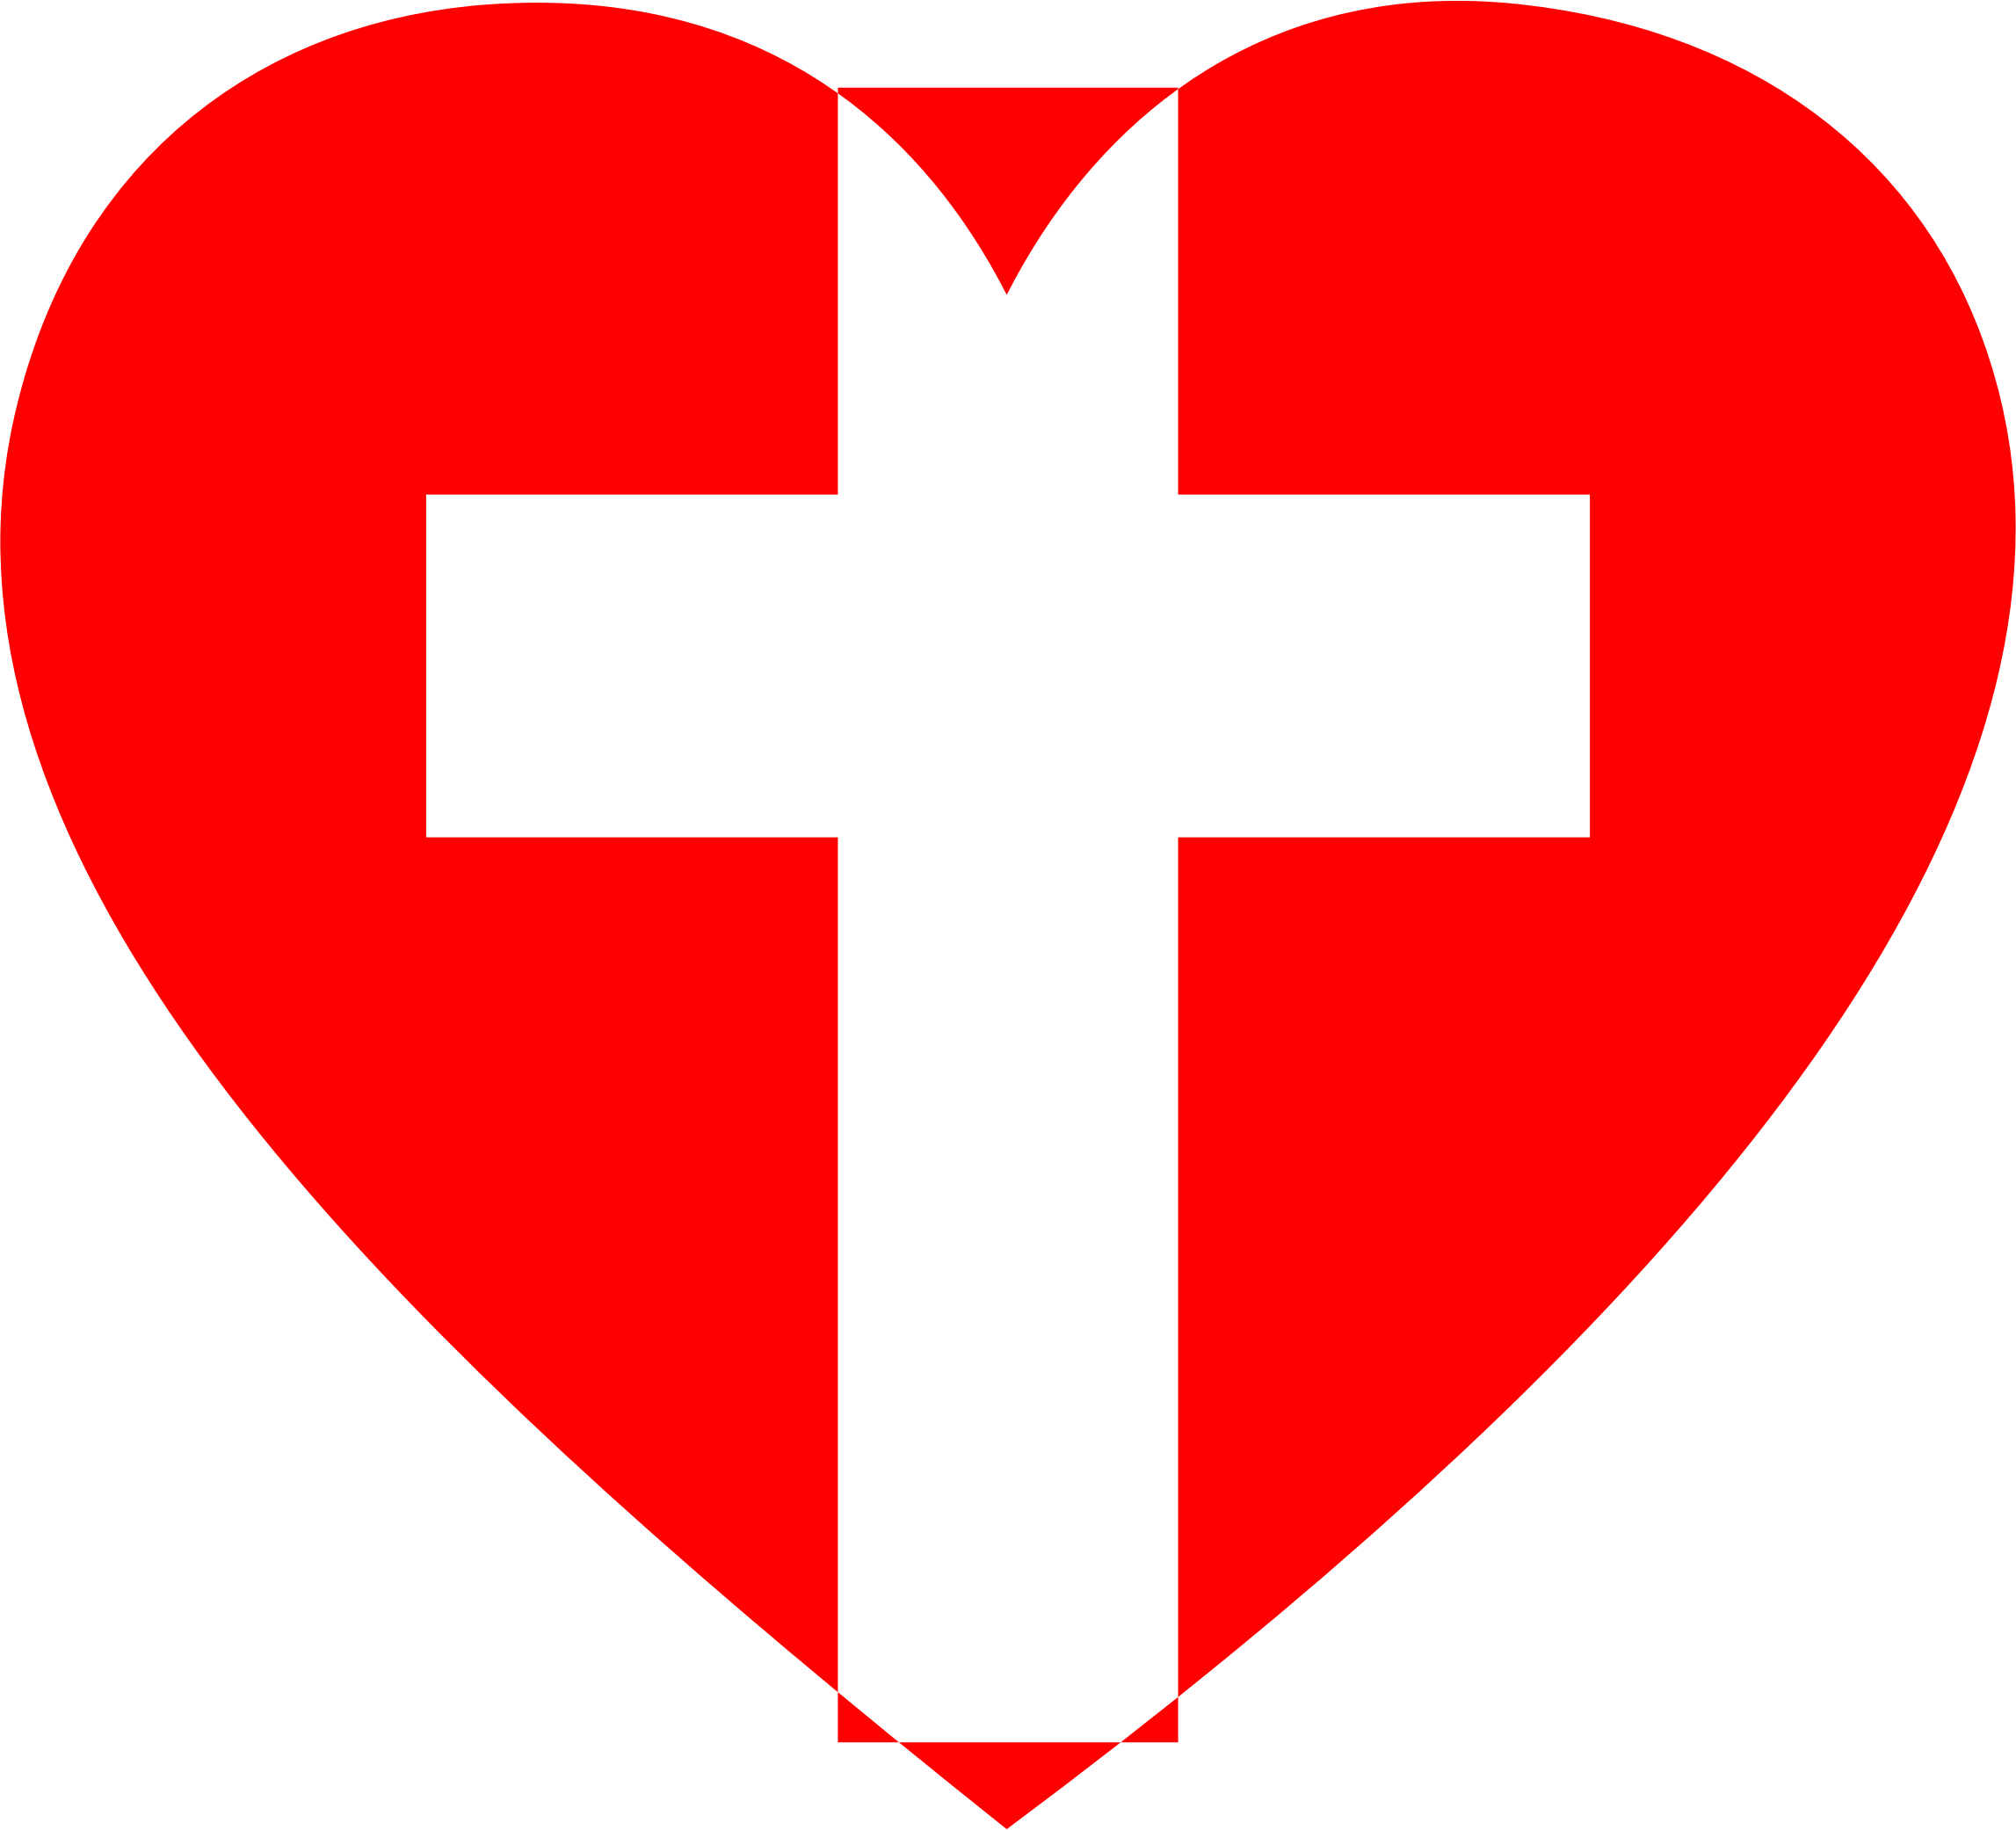 Cross With Heart Clipart.